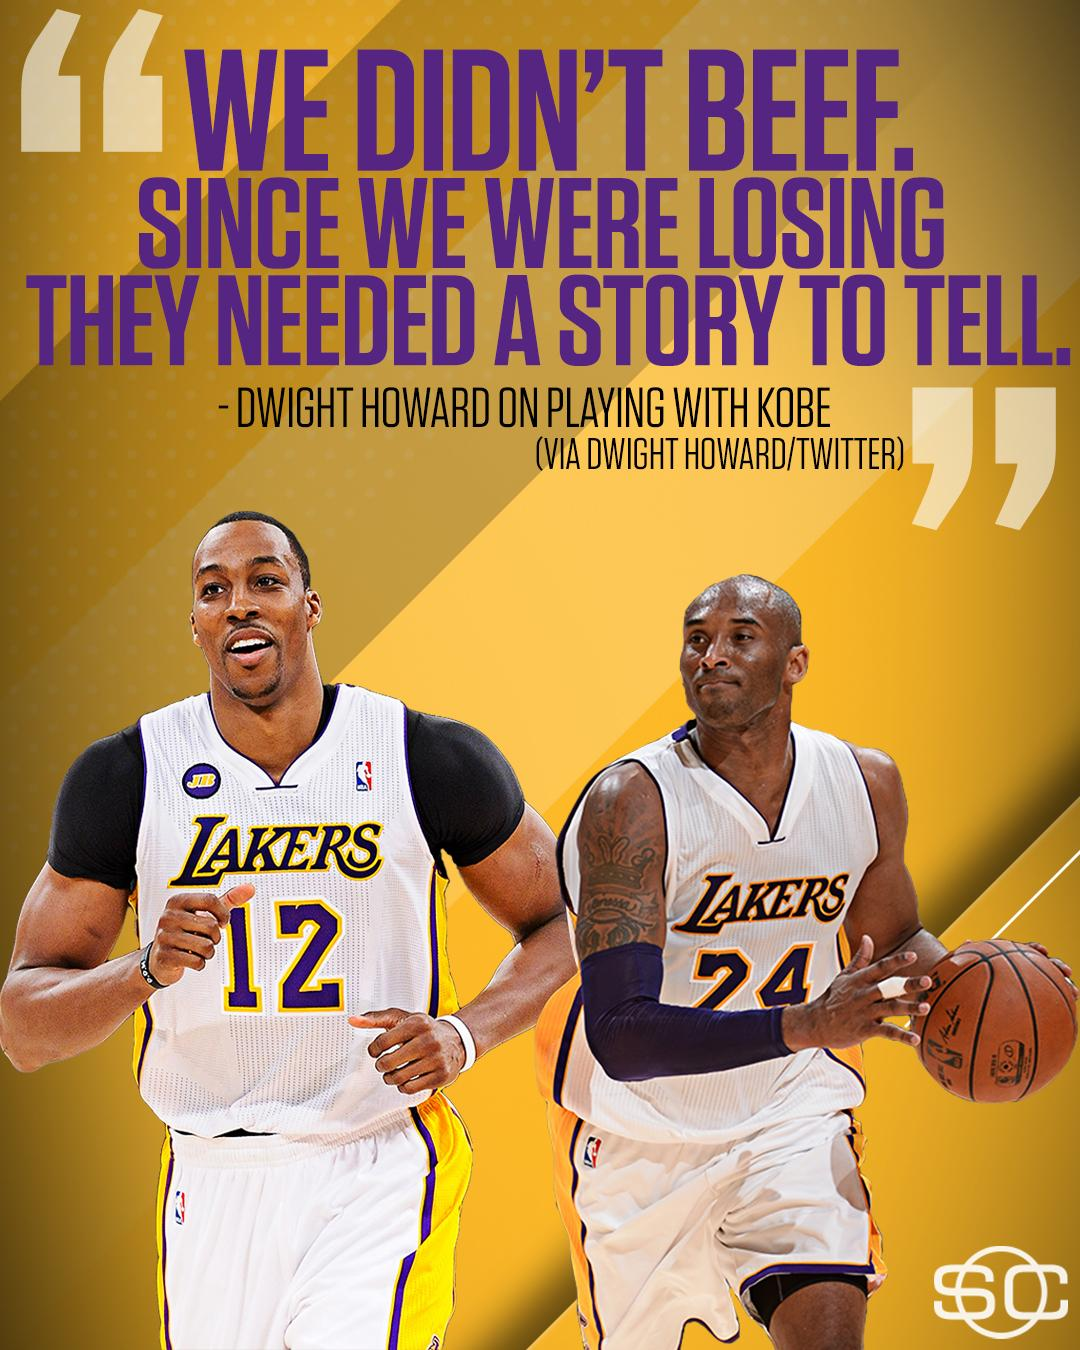 Dwight Howard says there were no issues with Kobe. https://t.co/AbKwnHbS3m